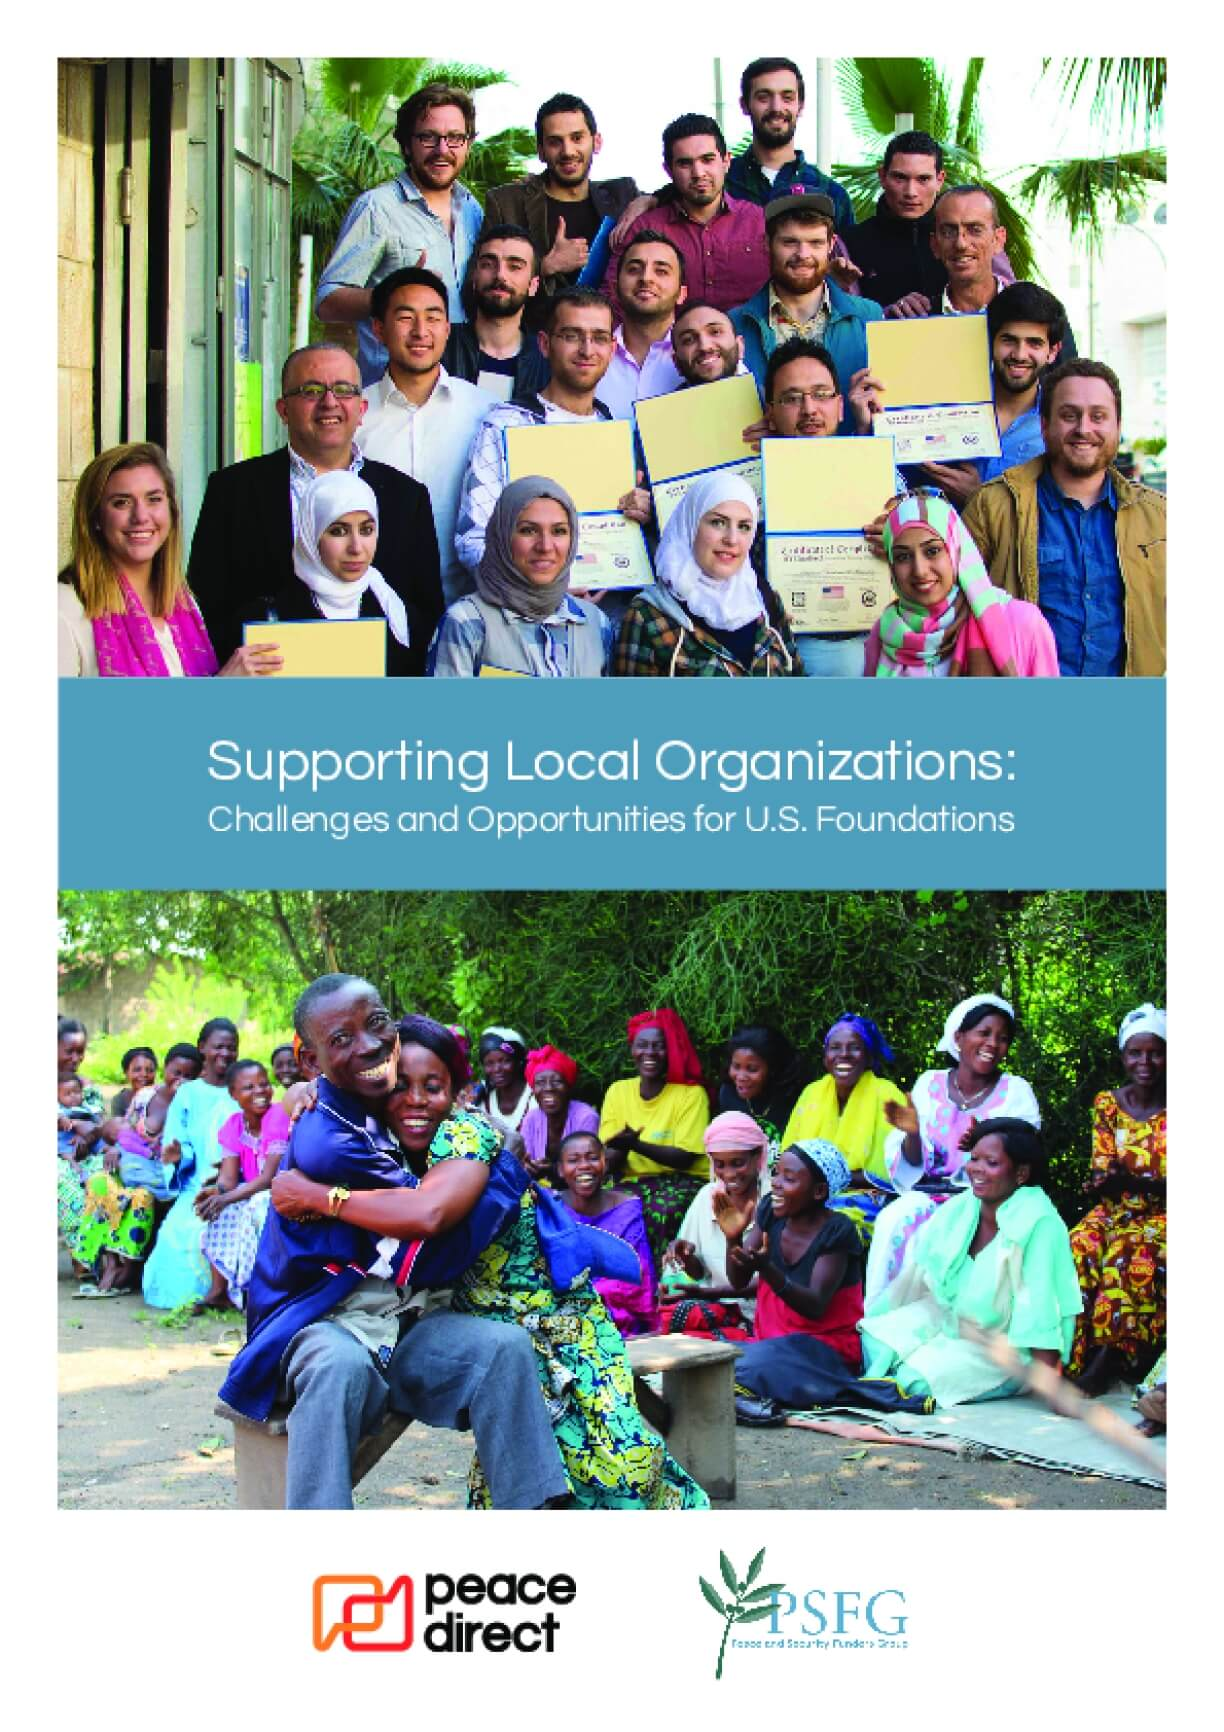 Supporting Local Organizations: Challenges and Opportunities for U.S. Foundations